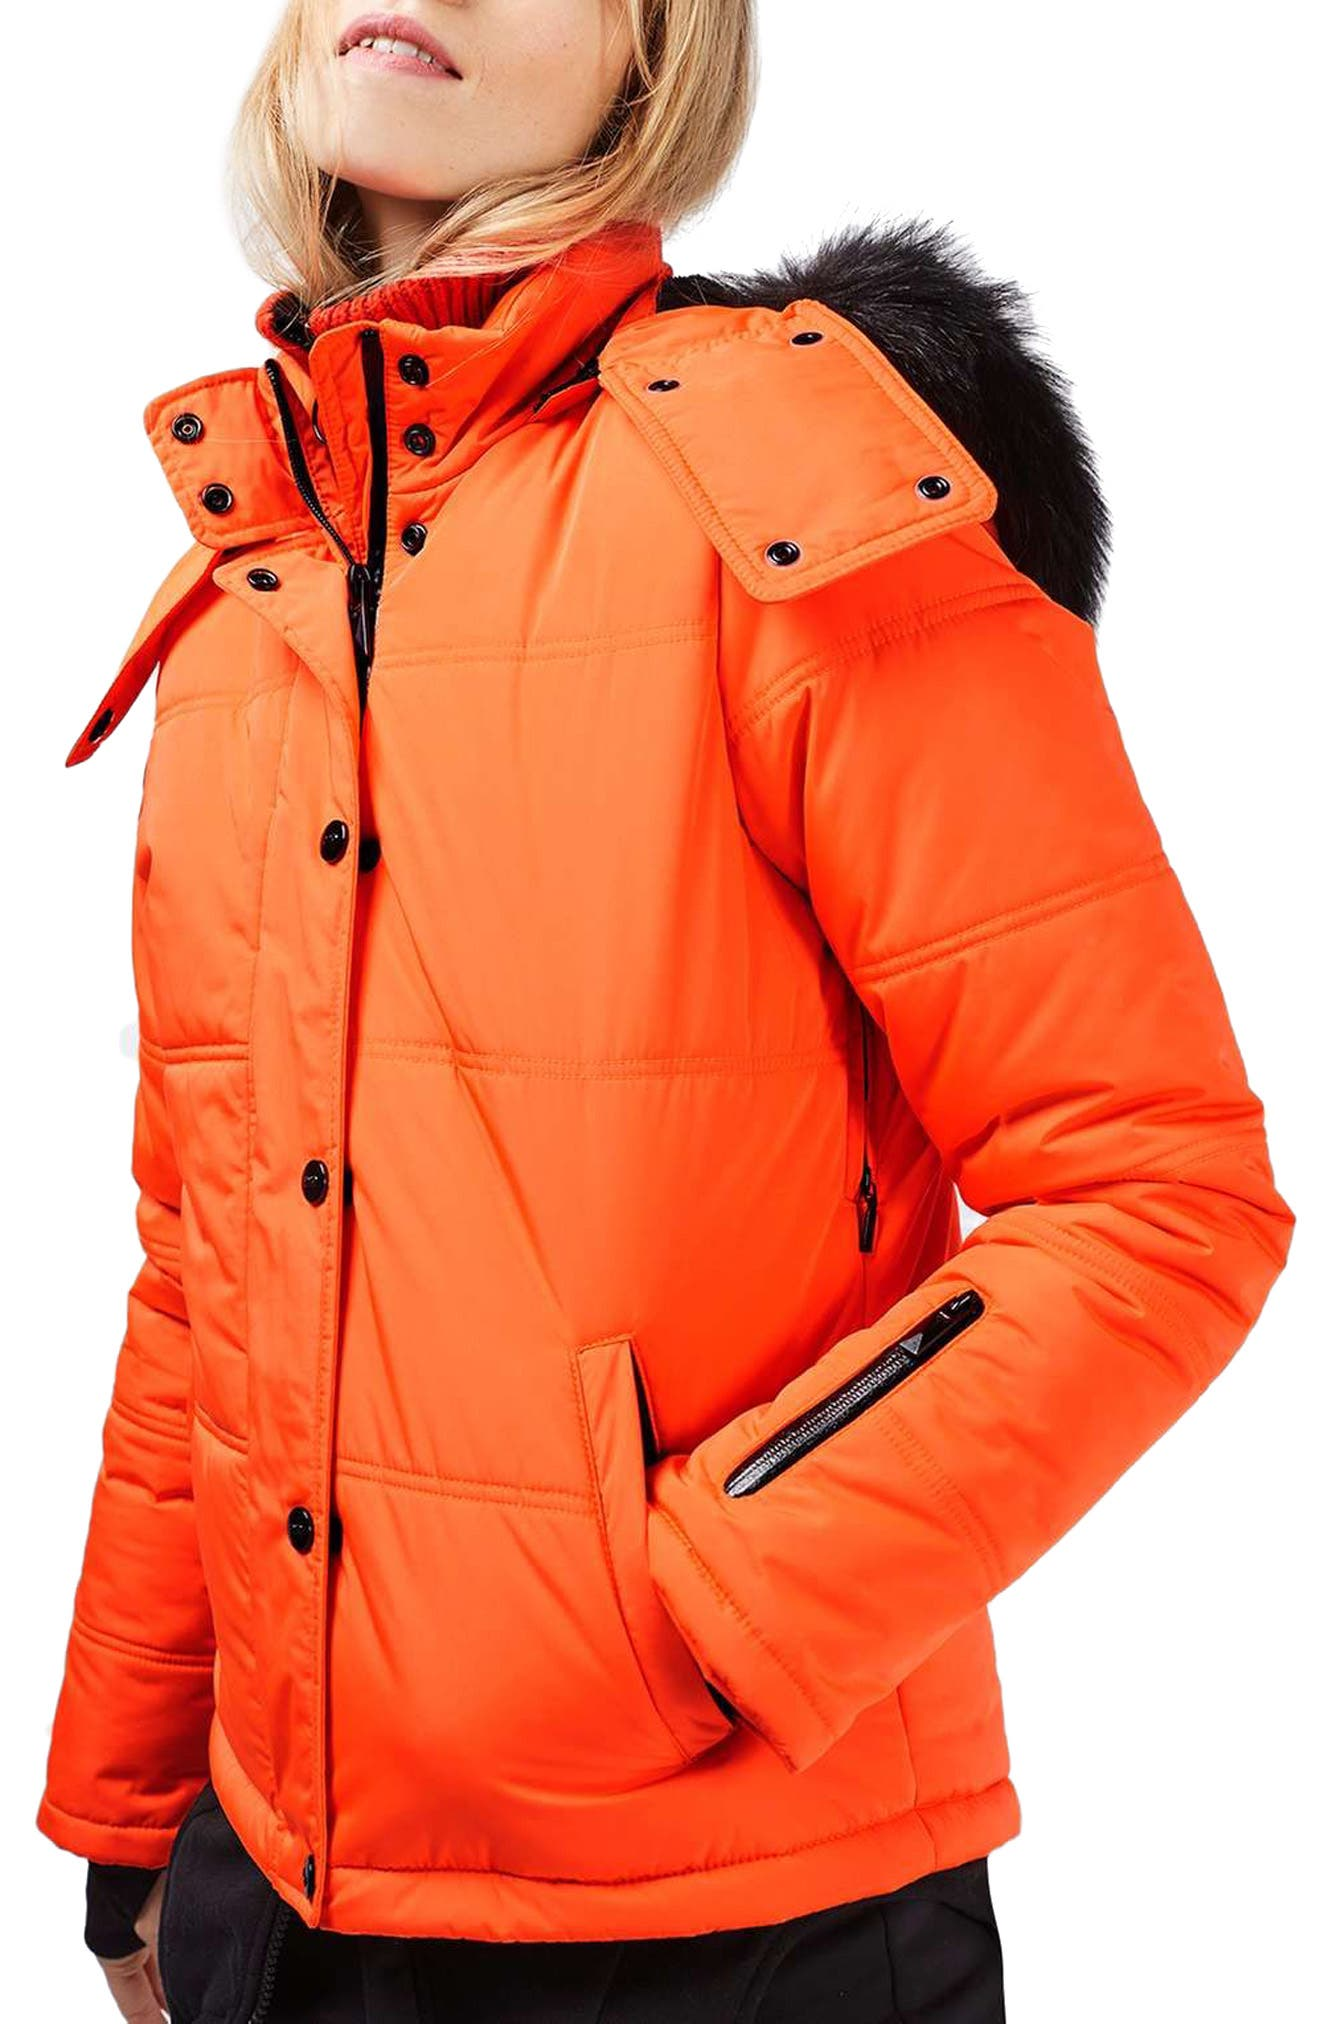 Alternate Image 1 Selected - Topshop Hero Puffer Ski Jacket